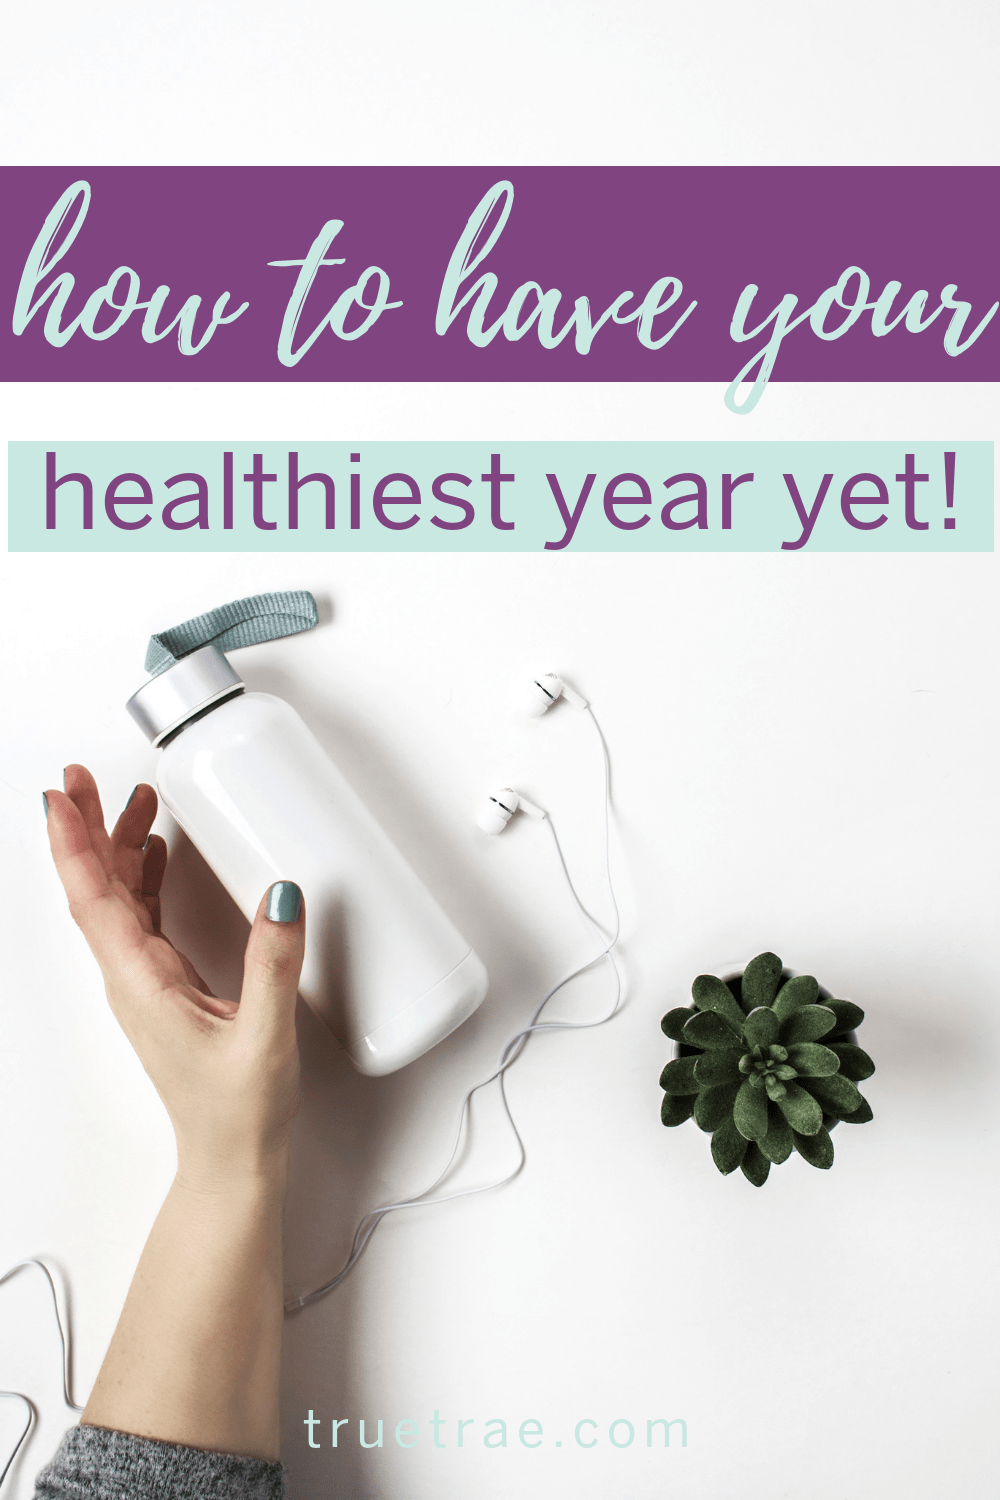 Looking for tips to get healthy? How to build your immune system? Find out how to be the healthiest you in 2019! #healthytips #loseweight #howto #immunesystem